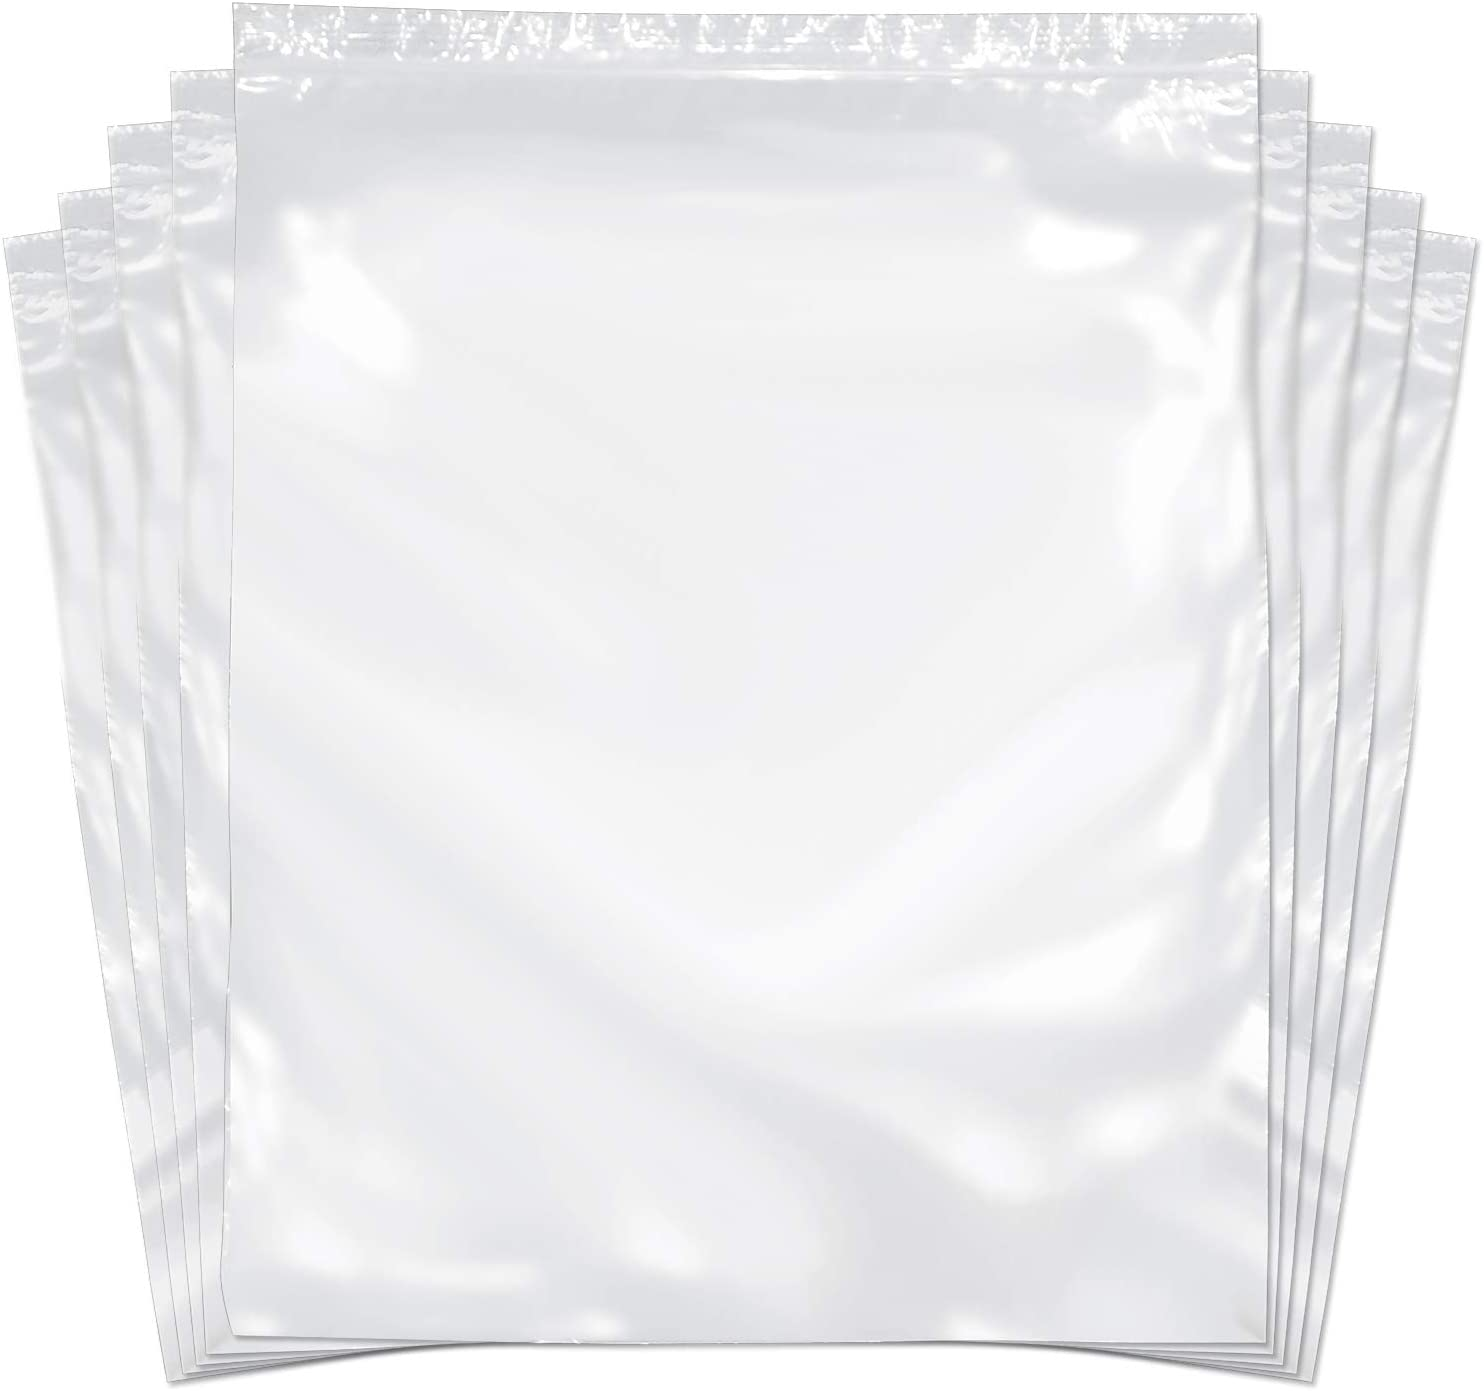 Strong 100 Bags SNL Quality Zip Lock Reclosable Clear Disposable Plastic Bags 9 X 12-2 MIL